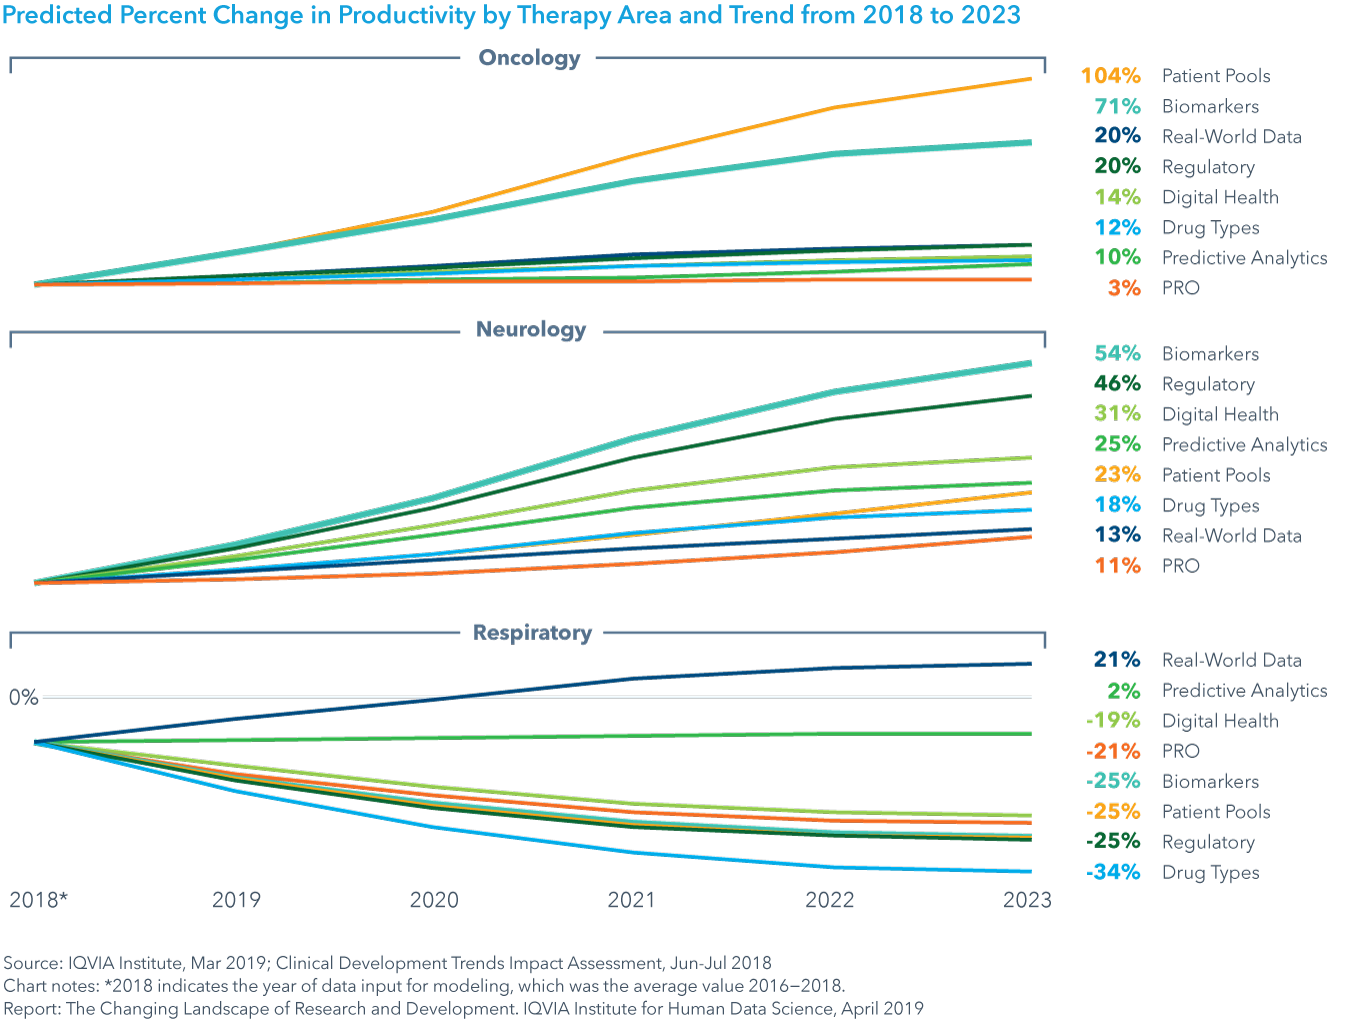 Chart 35: Predicted Percent Change in Productivity by Therapy Area and Trend from 2018 to 2023